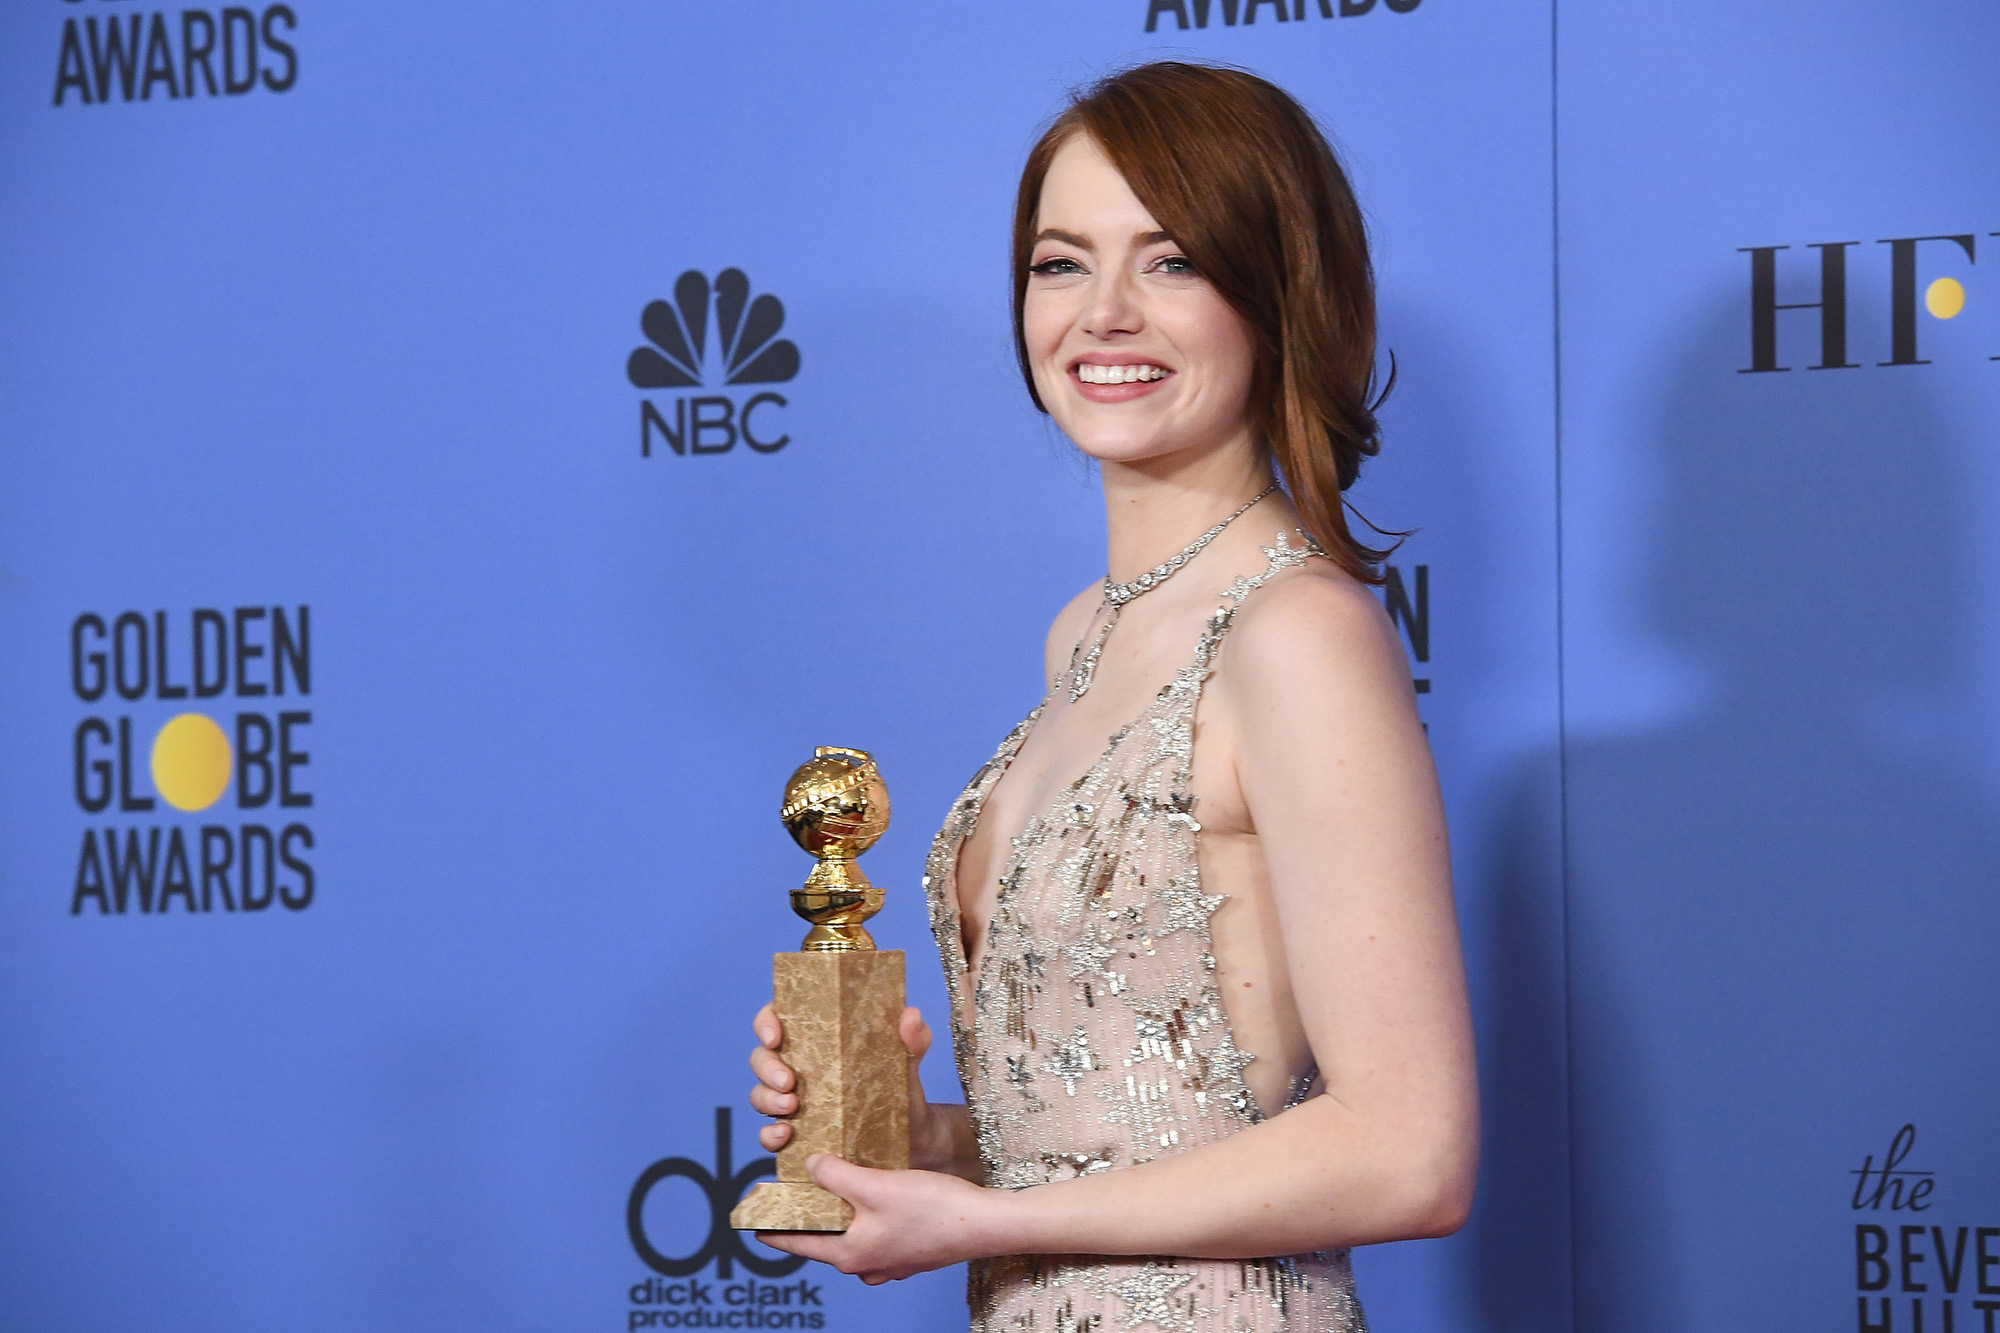 Emma Stone, winner of the Best Performance by an Actress in a Motion Picture — Comedy or Musical for 'La La Land', poses in the press room at the 74th Annual Golden Globe Awards held at the Beverly Hilton Hotel on January 8, 2017.  (Photo by Kevork Djansezian/NBC/NBCU Photo Bank via Getty Images)